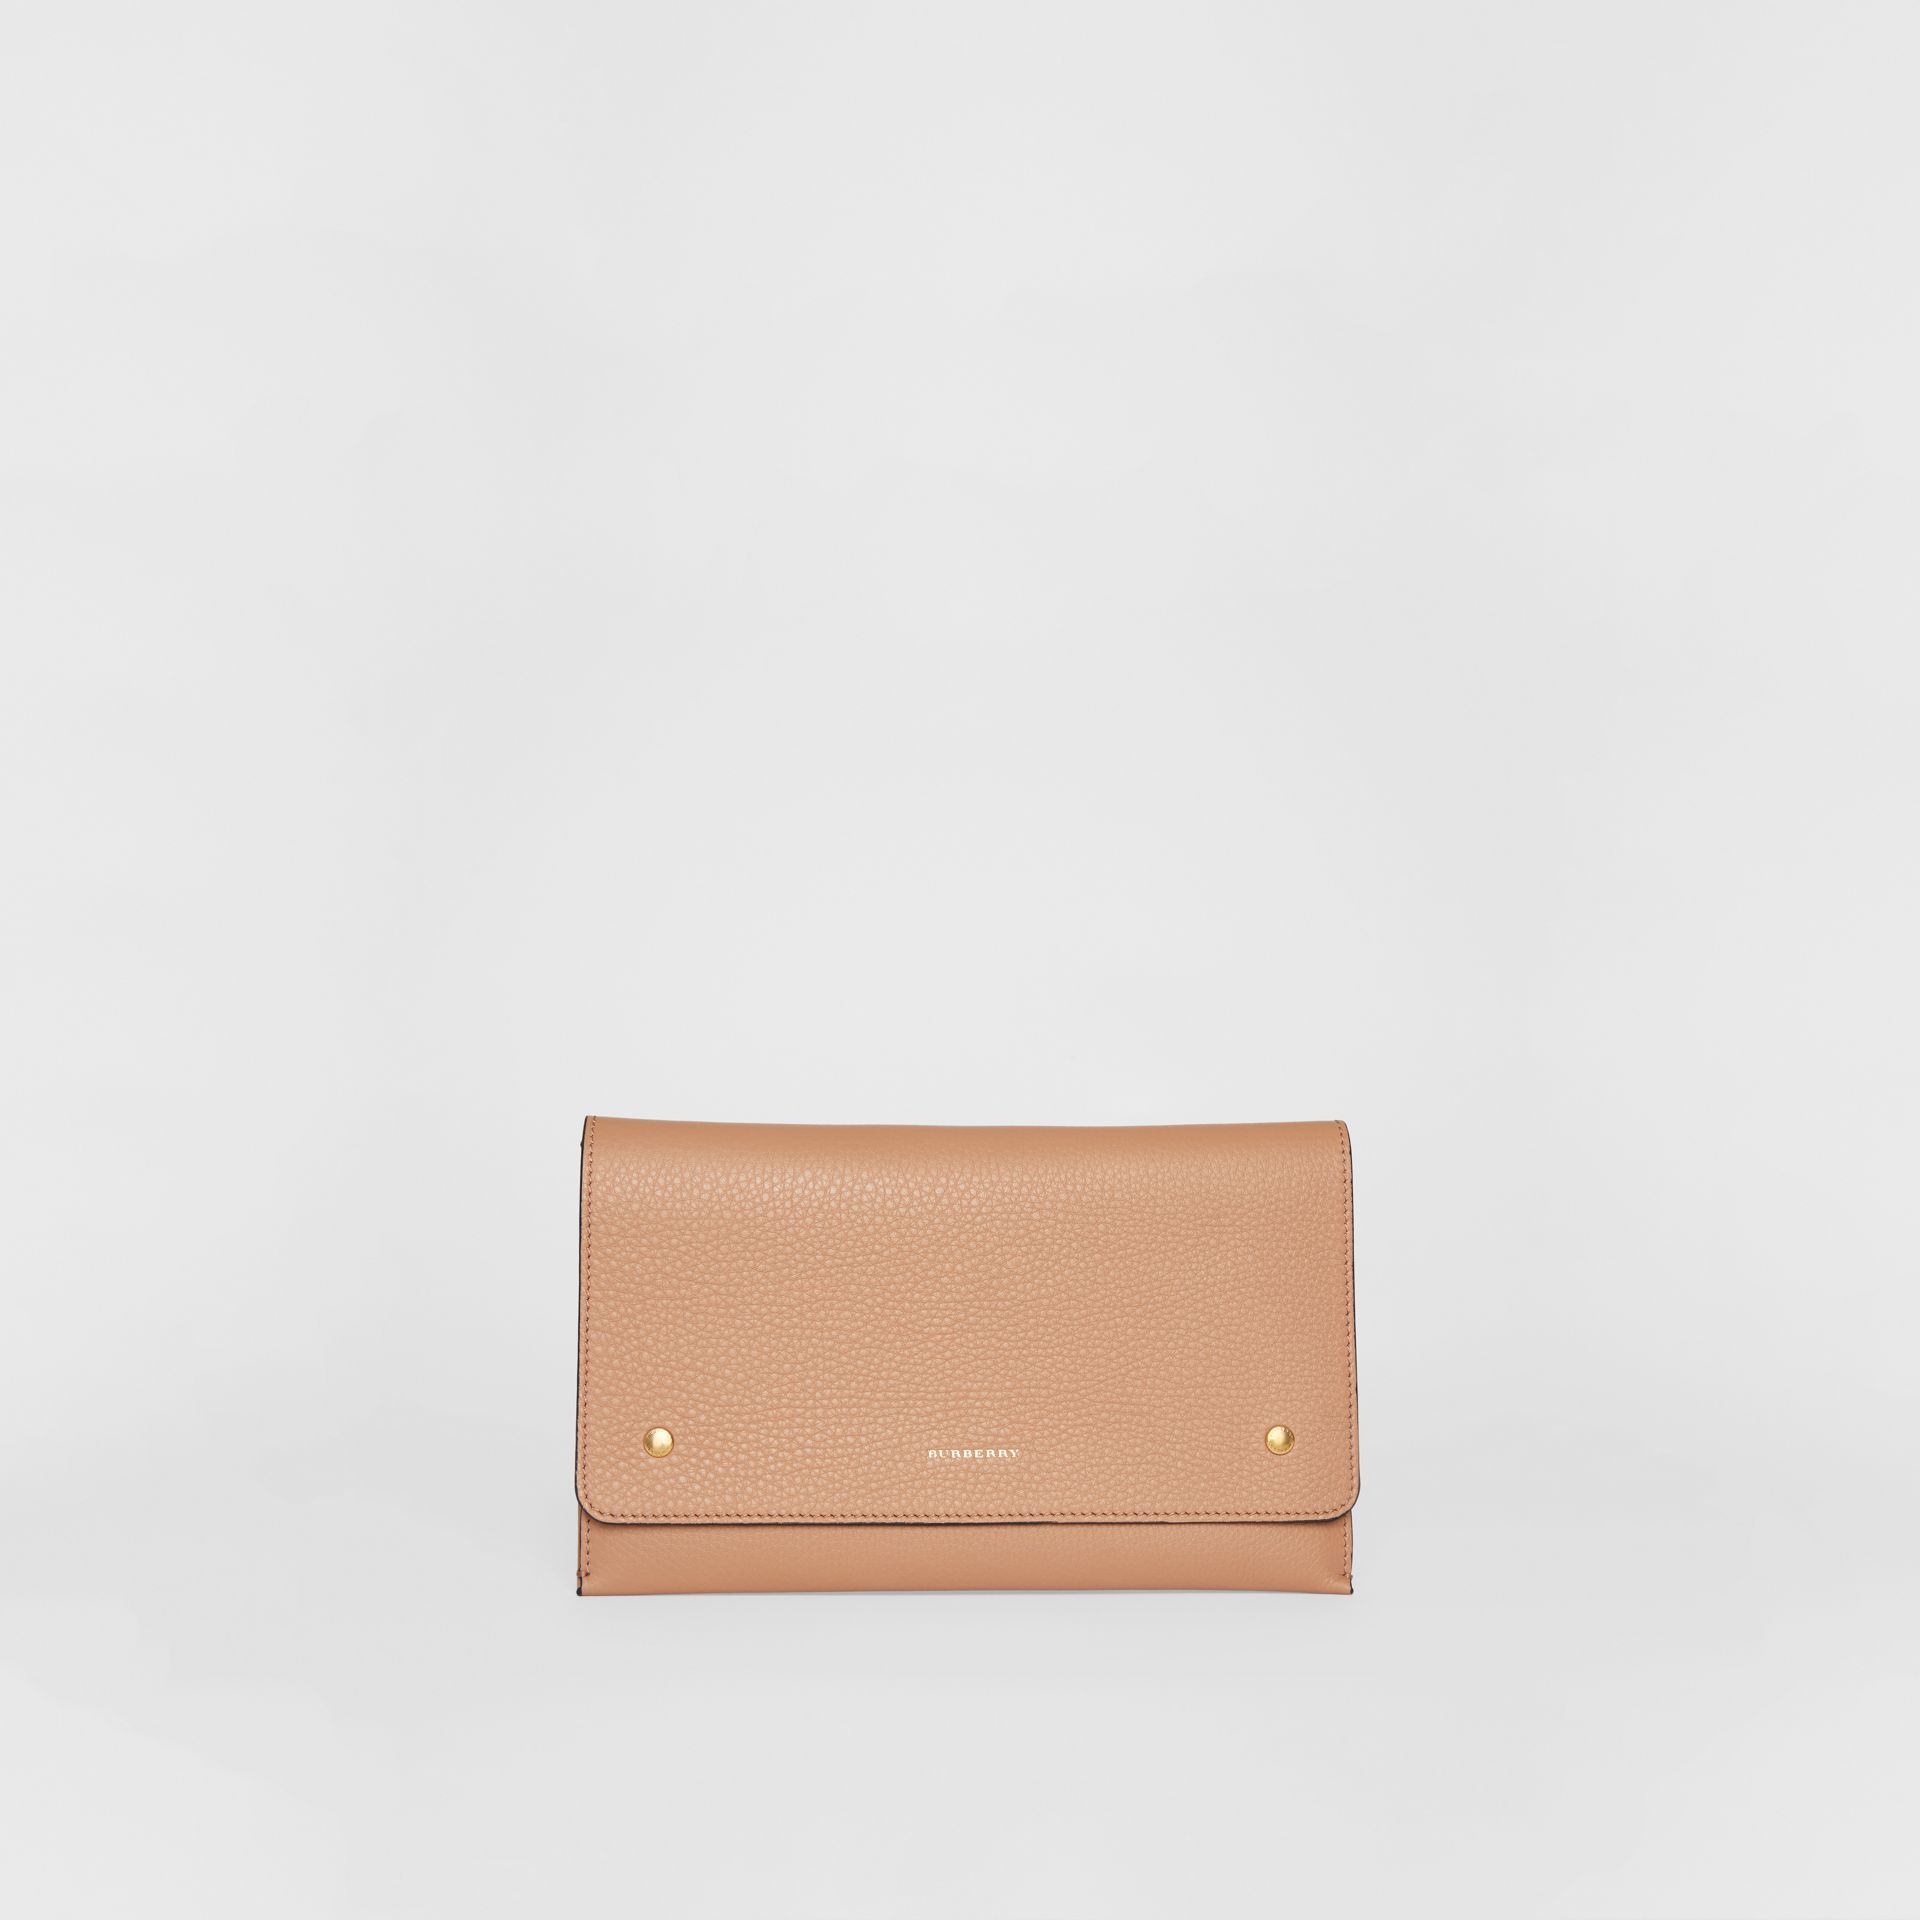 Two-tone Leather Wristlet Clutch in Light Camel - Women | Burberry - gallery image 3